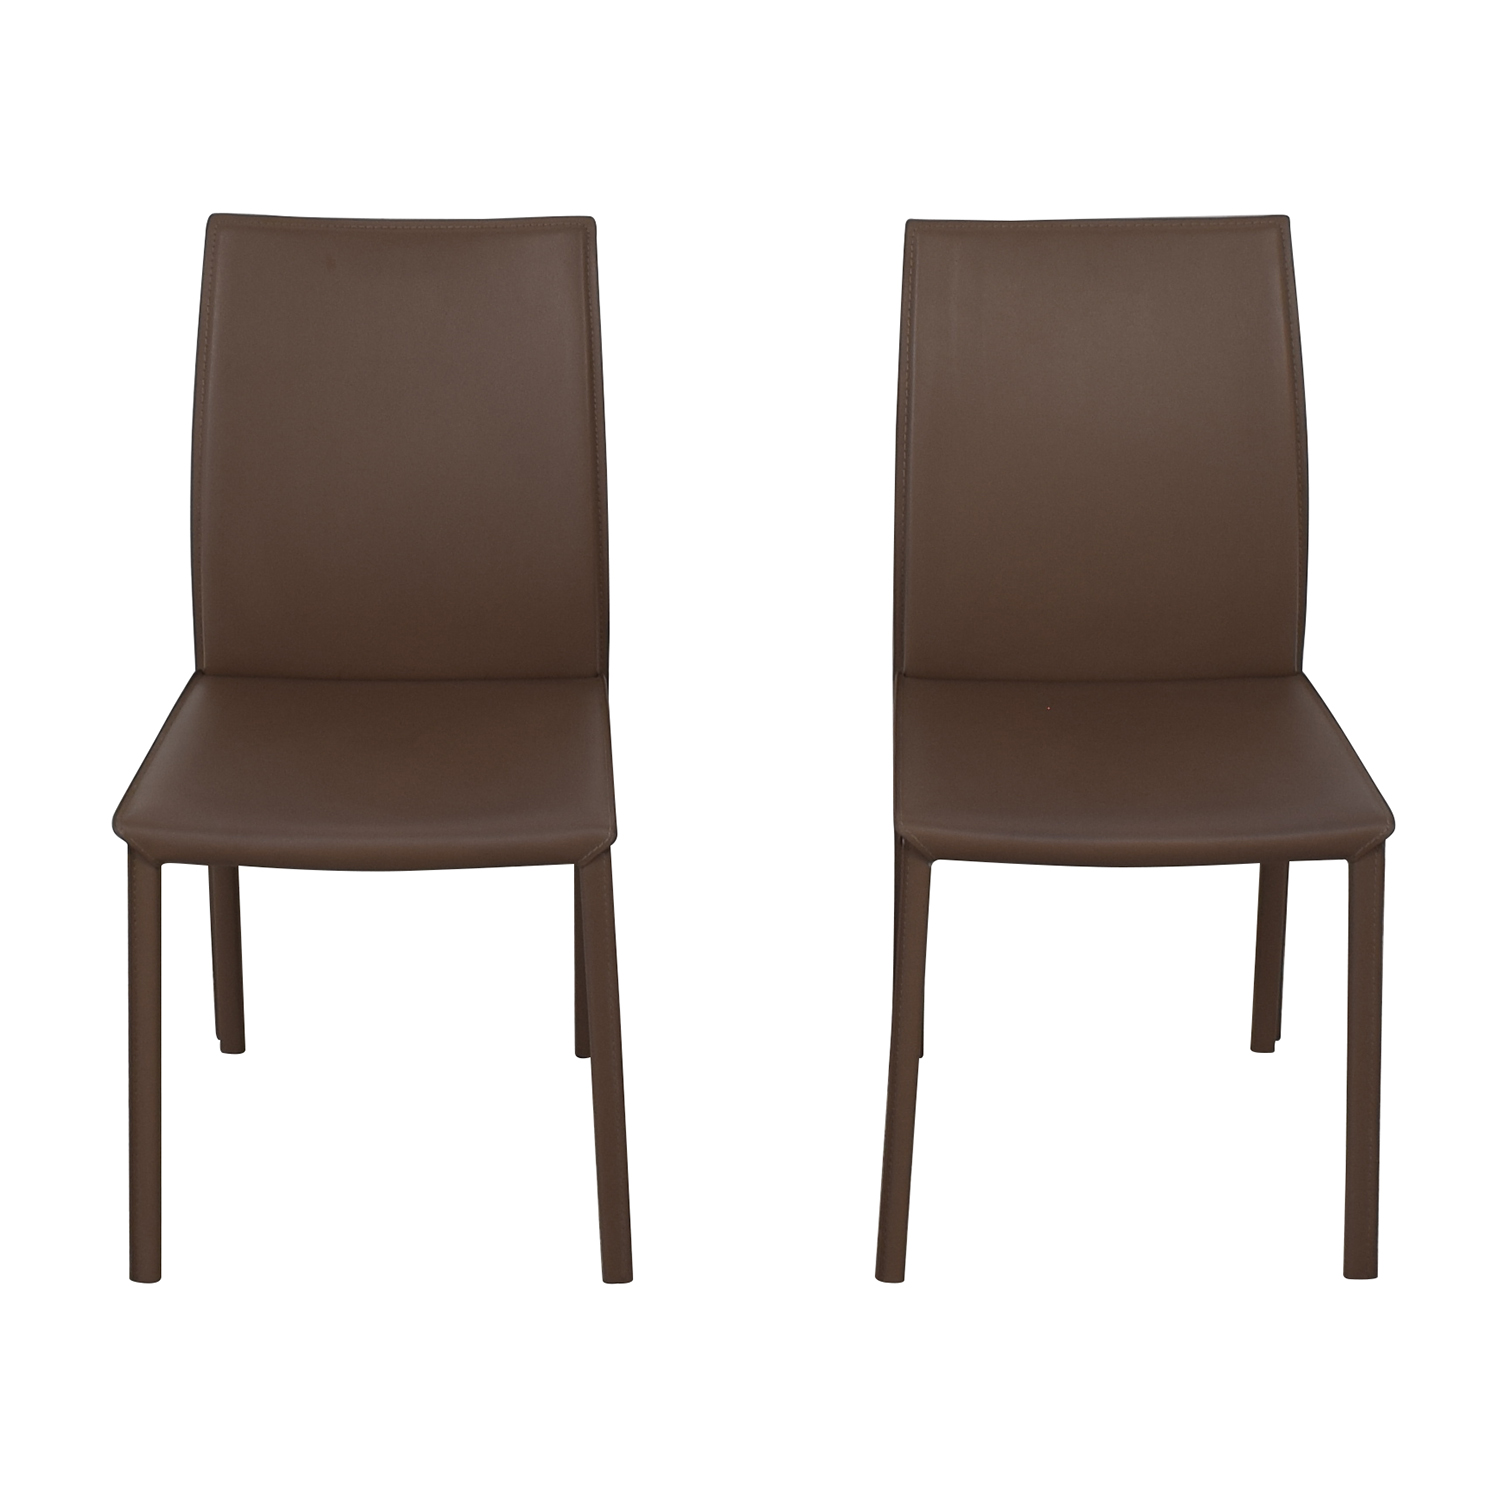 BoConcept BoConcept Zarra Dining Chairs Dining Chairs